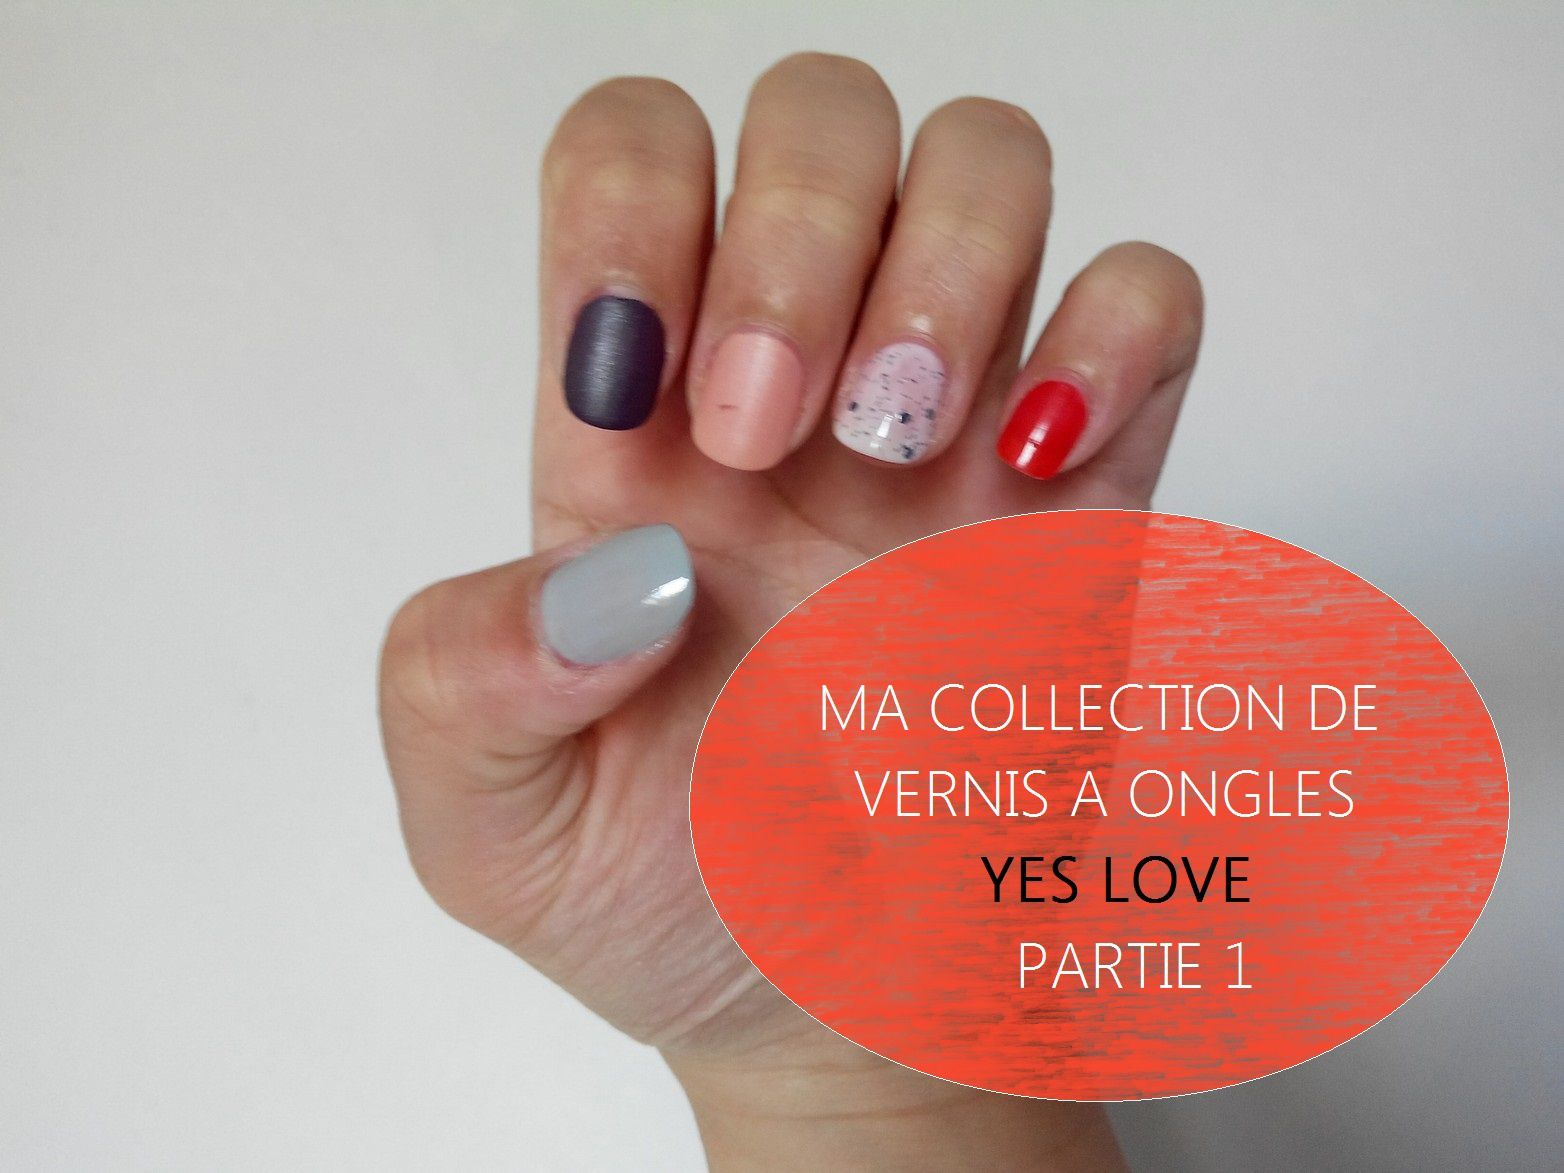 Collection vernis à ongles à bas prix - Yes love - PARTIE 1